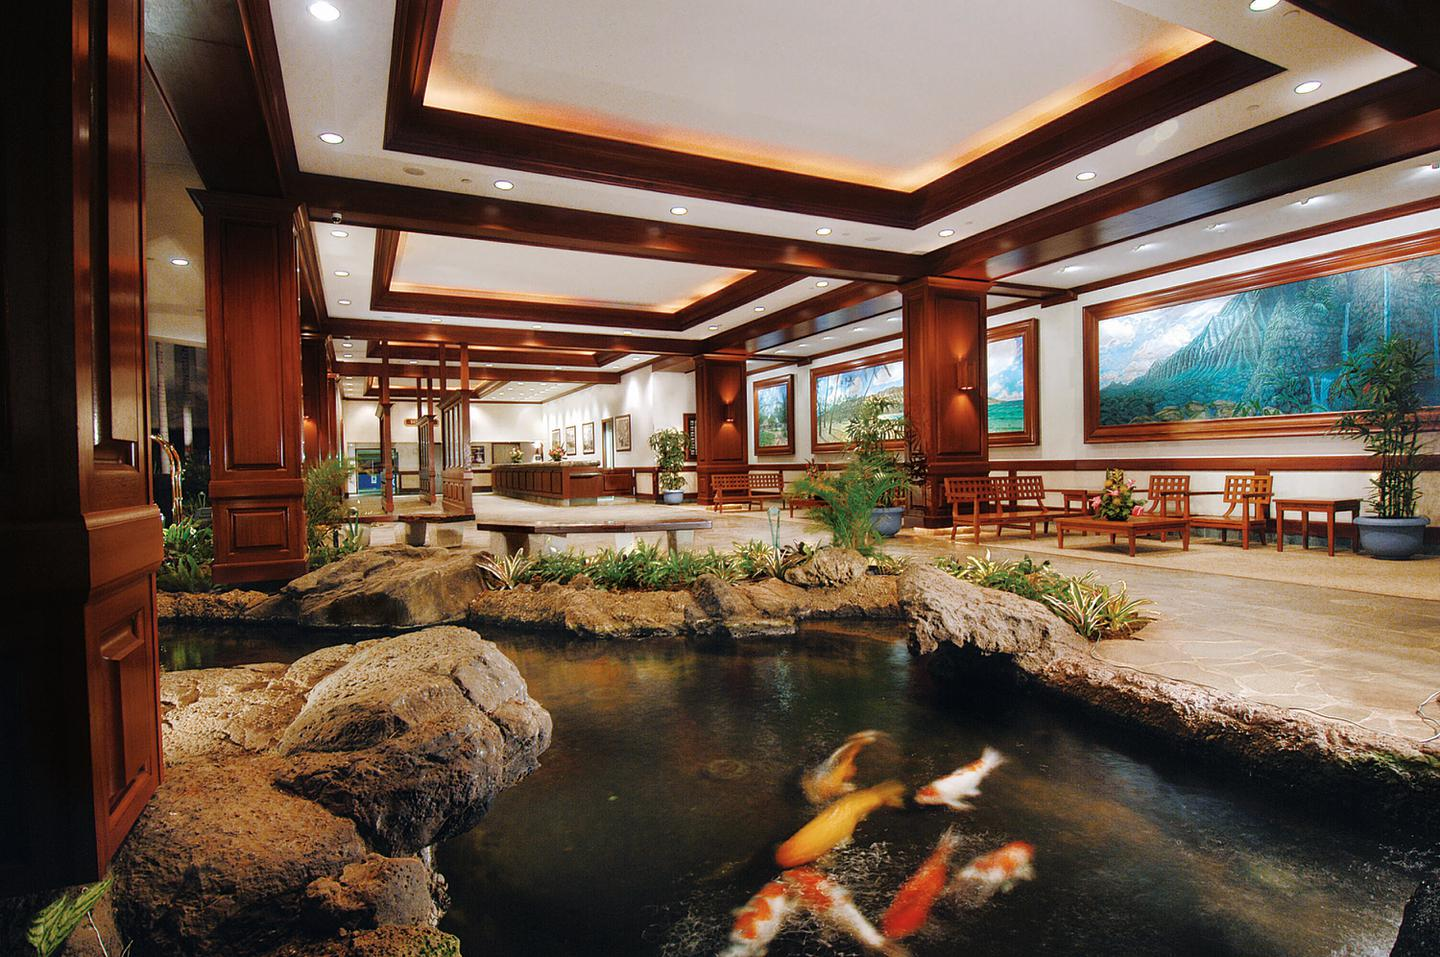 Waikiki Family Hotel Aston At The Banyan Aqua Hotels Running Electric Power To A Garage Or Garden Pond Learn About Code